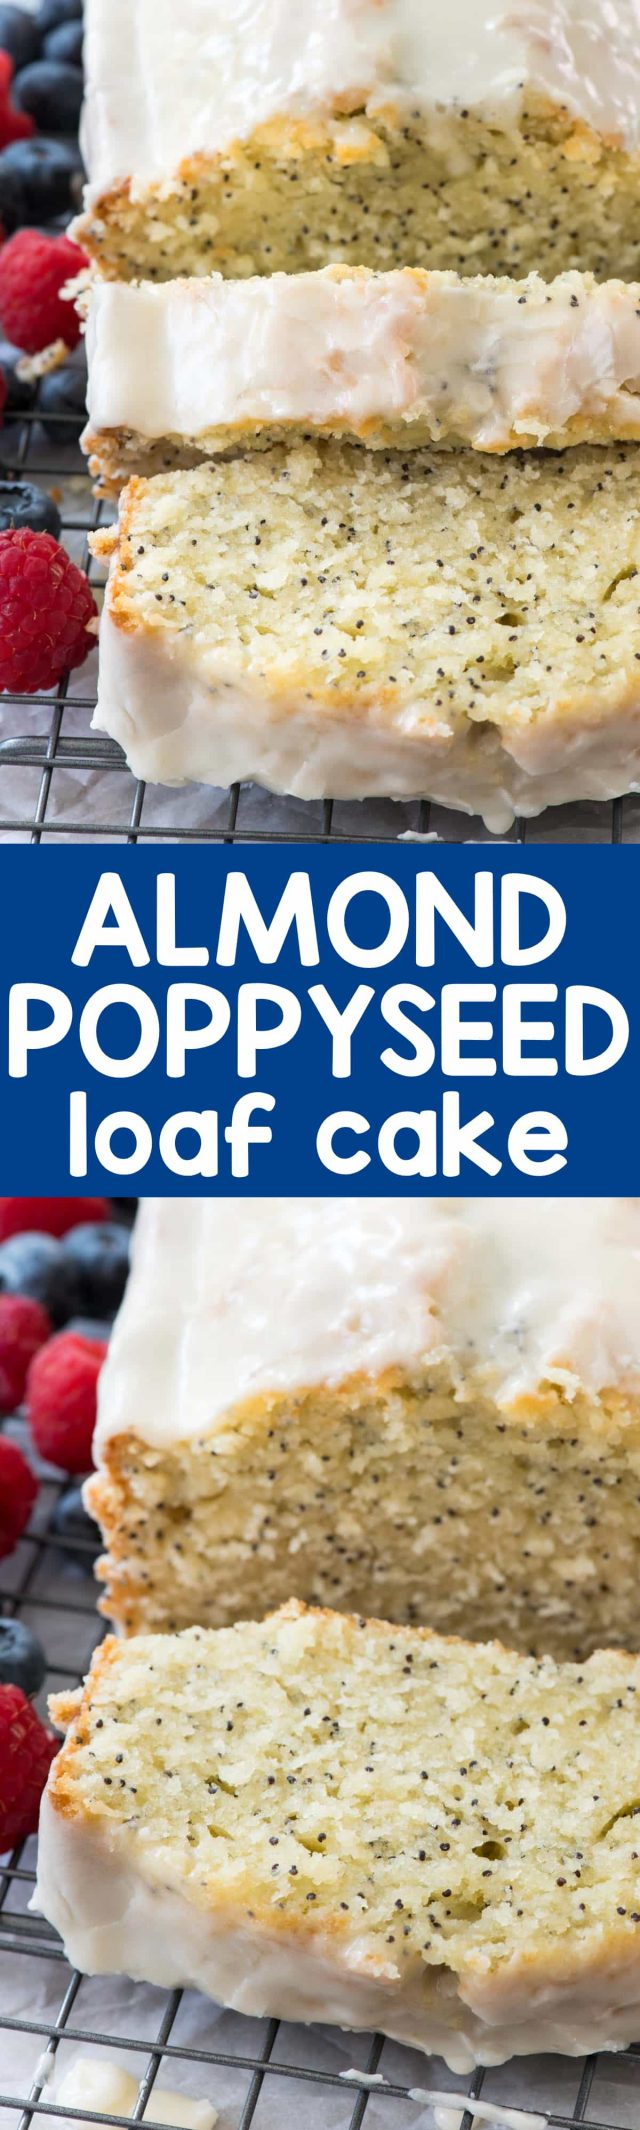 Almond Poppyseed Loaf Cake is an easy pound cake recipe that's made in a loaf pan. It's like a quick bread but a cake all in one, full of almond extract flavor and poppyseed!